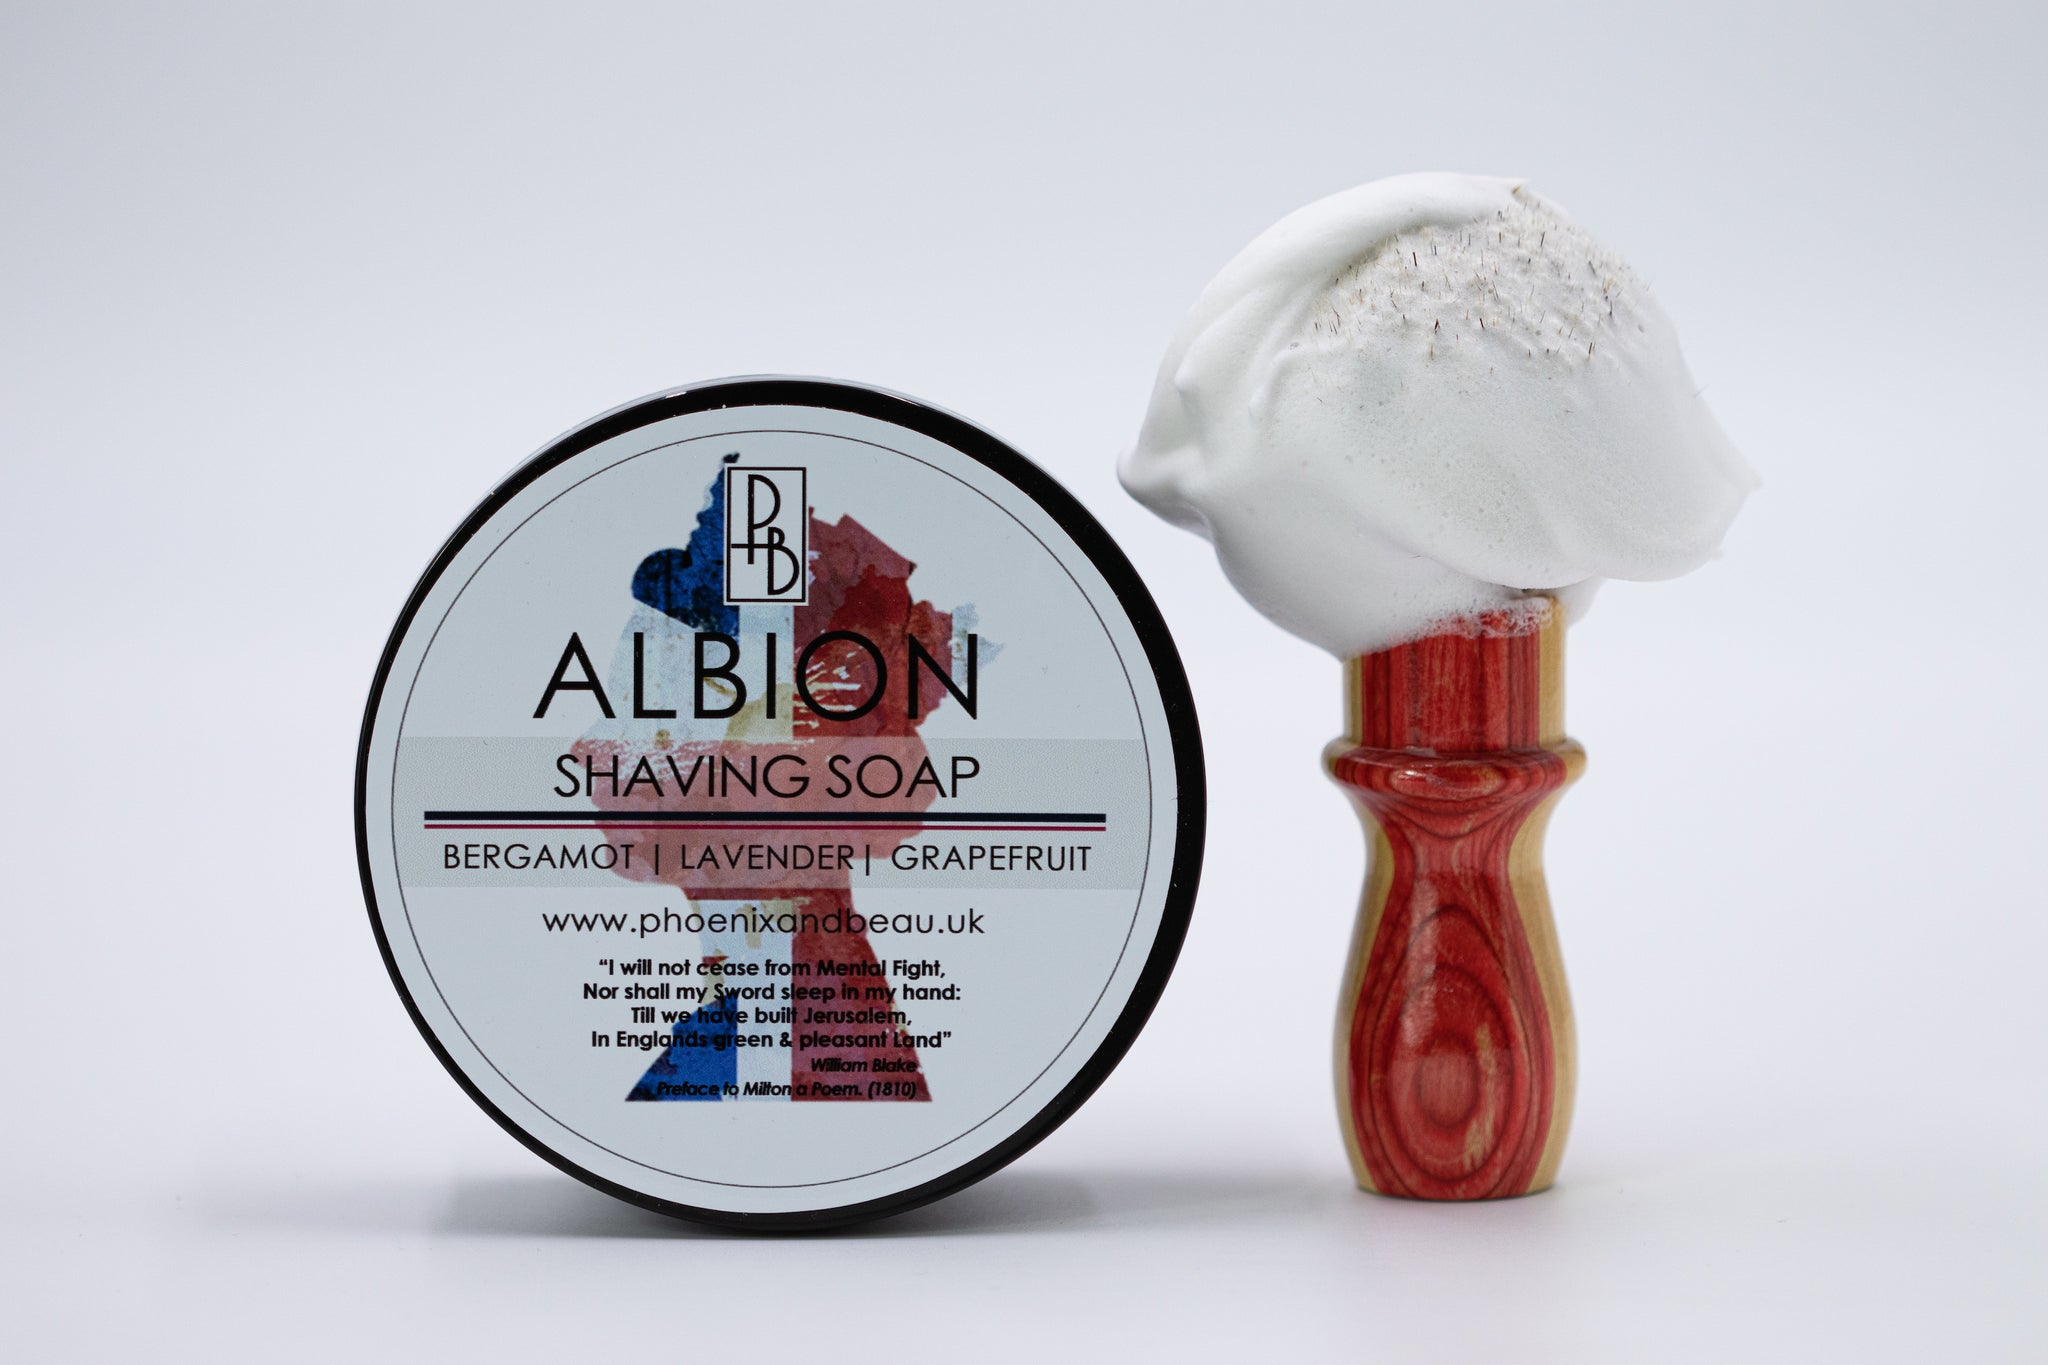 Phoenix & Beau 'Albion' Luxury Tallow Shaving Soap